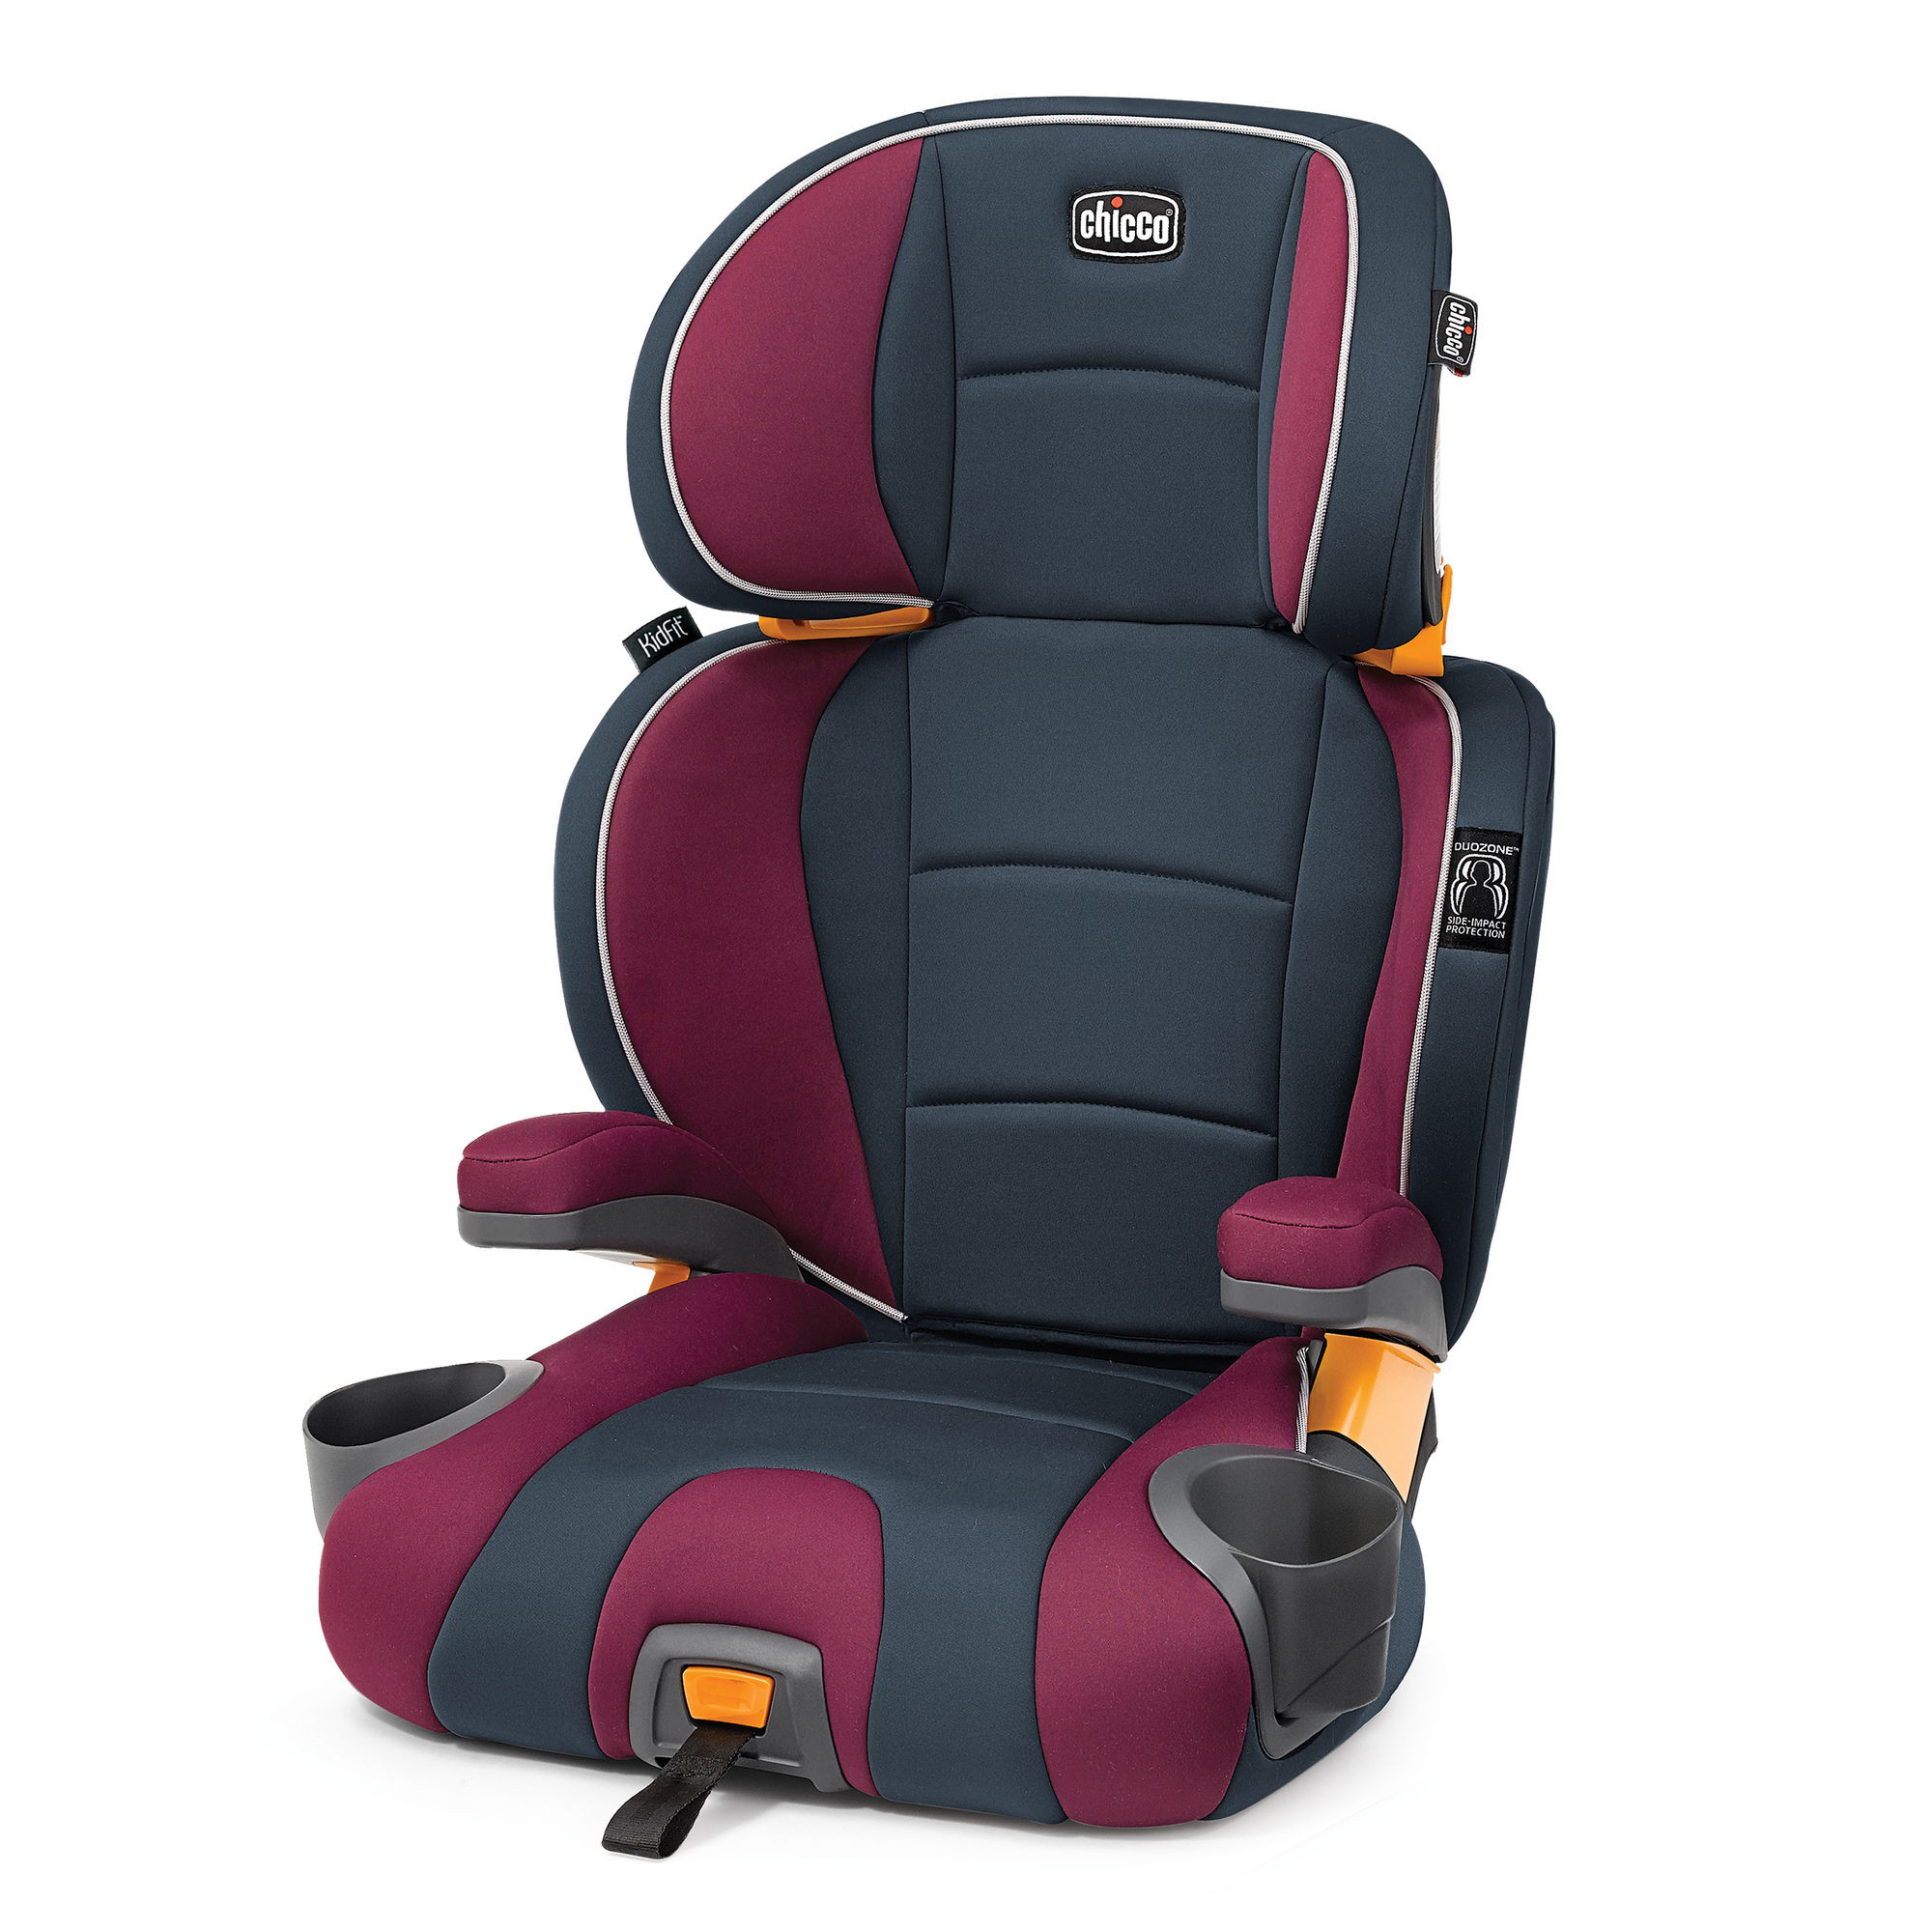 Chicco KidFit 2 in 1 Belt Positioning Booster Car Seat - Amethyst (Red)